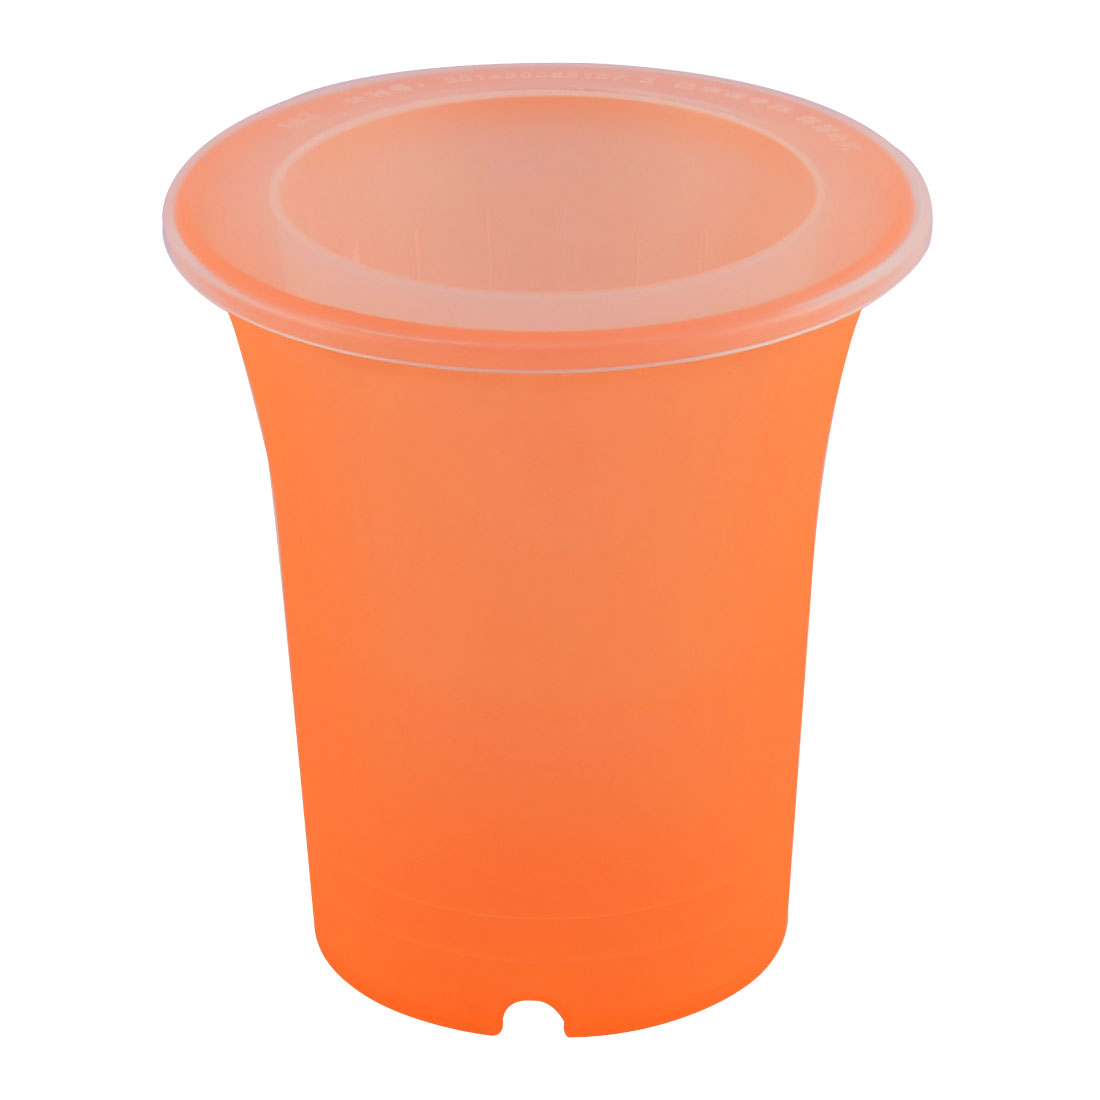 Balcony Plastic Cylinder Shape Self Watering Planter Flowerpot Container Orange